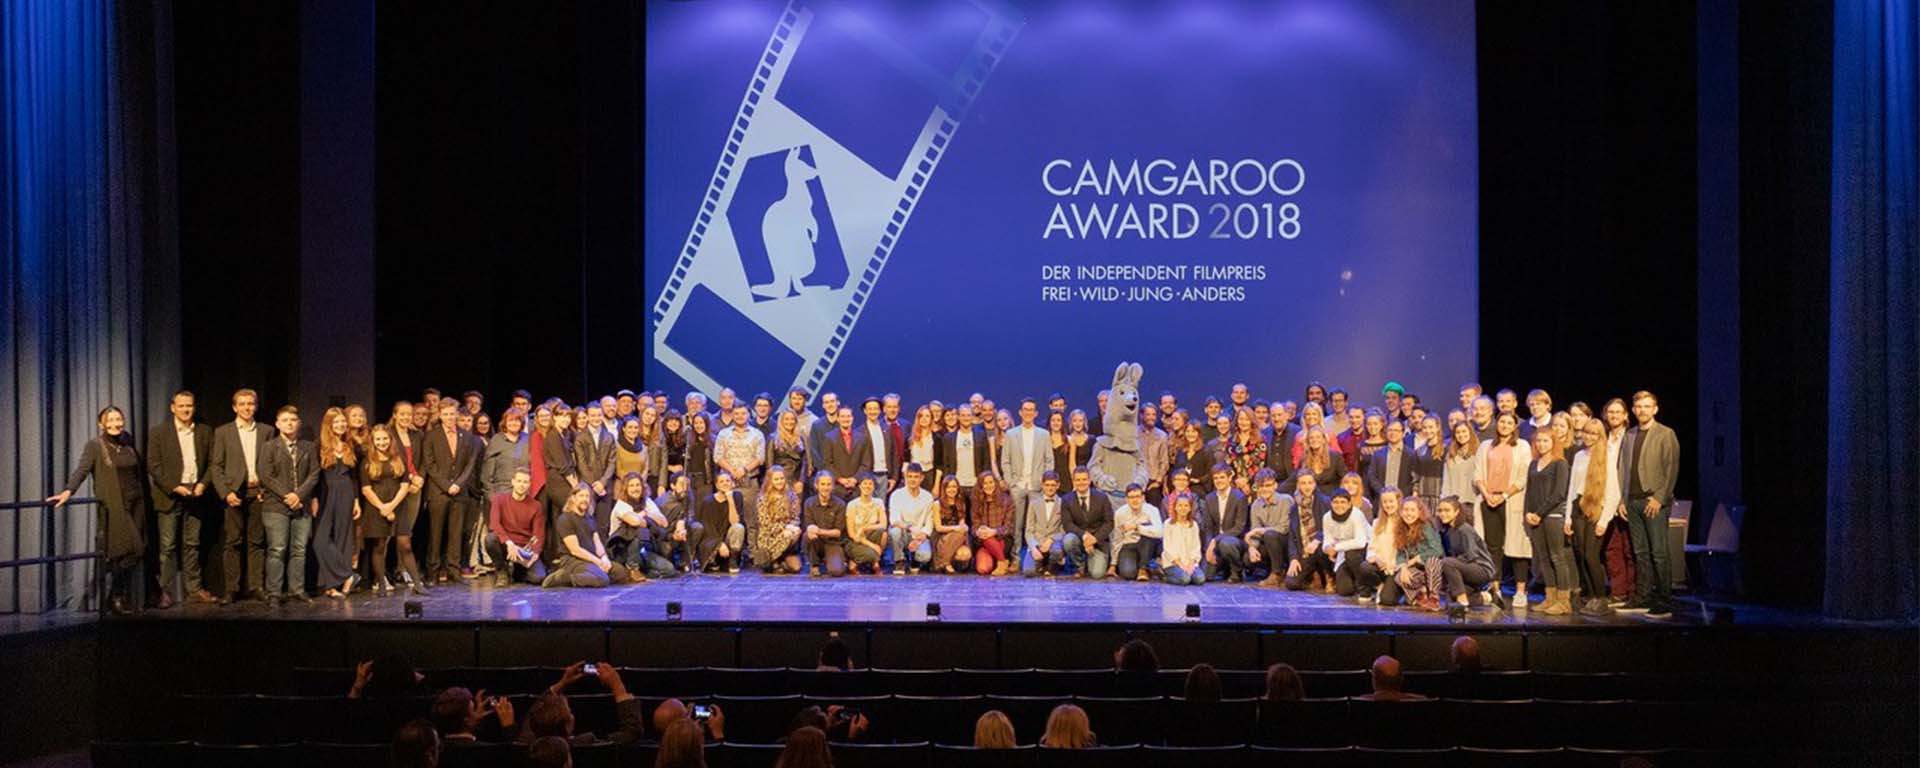 Camgaroo Award Night 2019 – frei, wild, jung, anders!